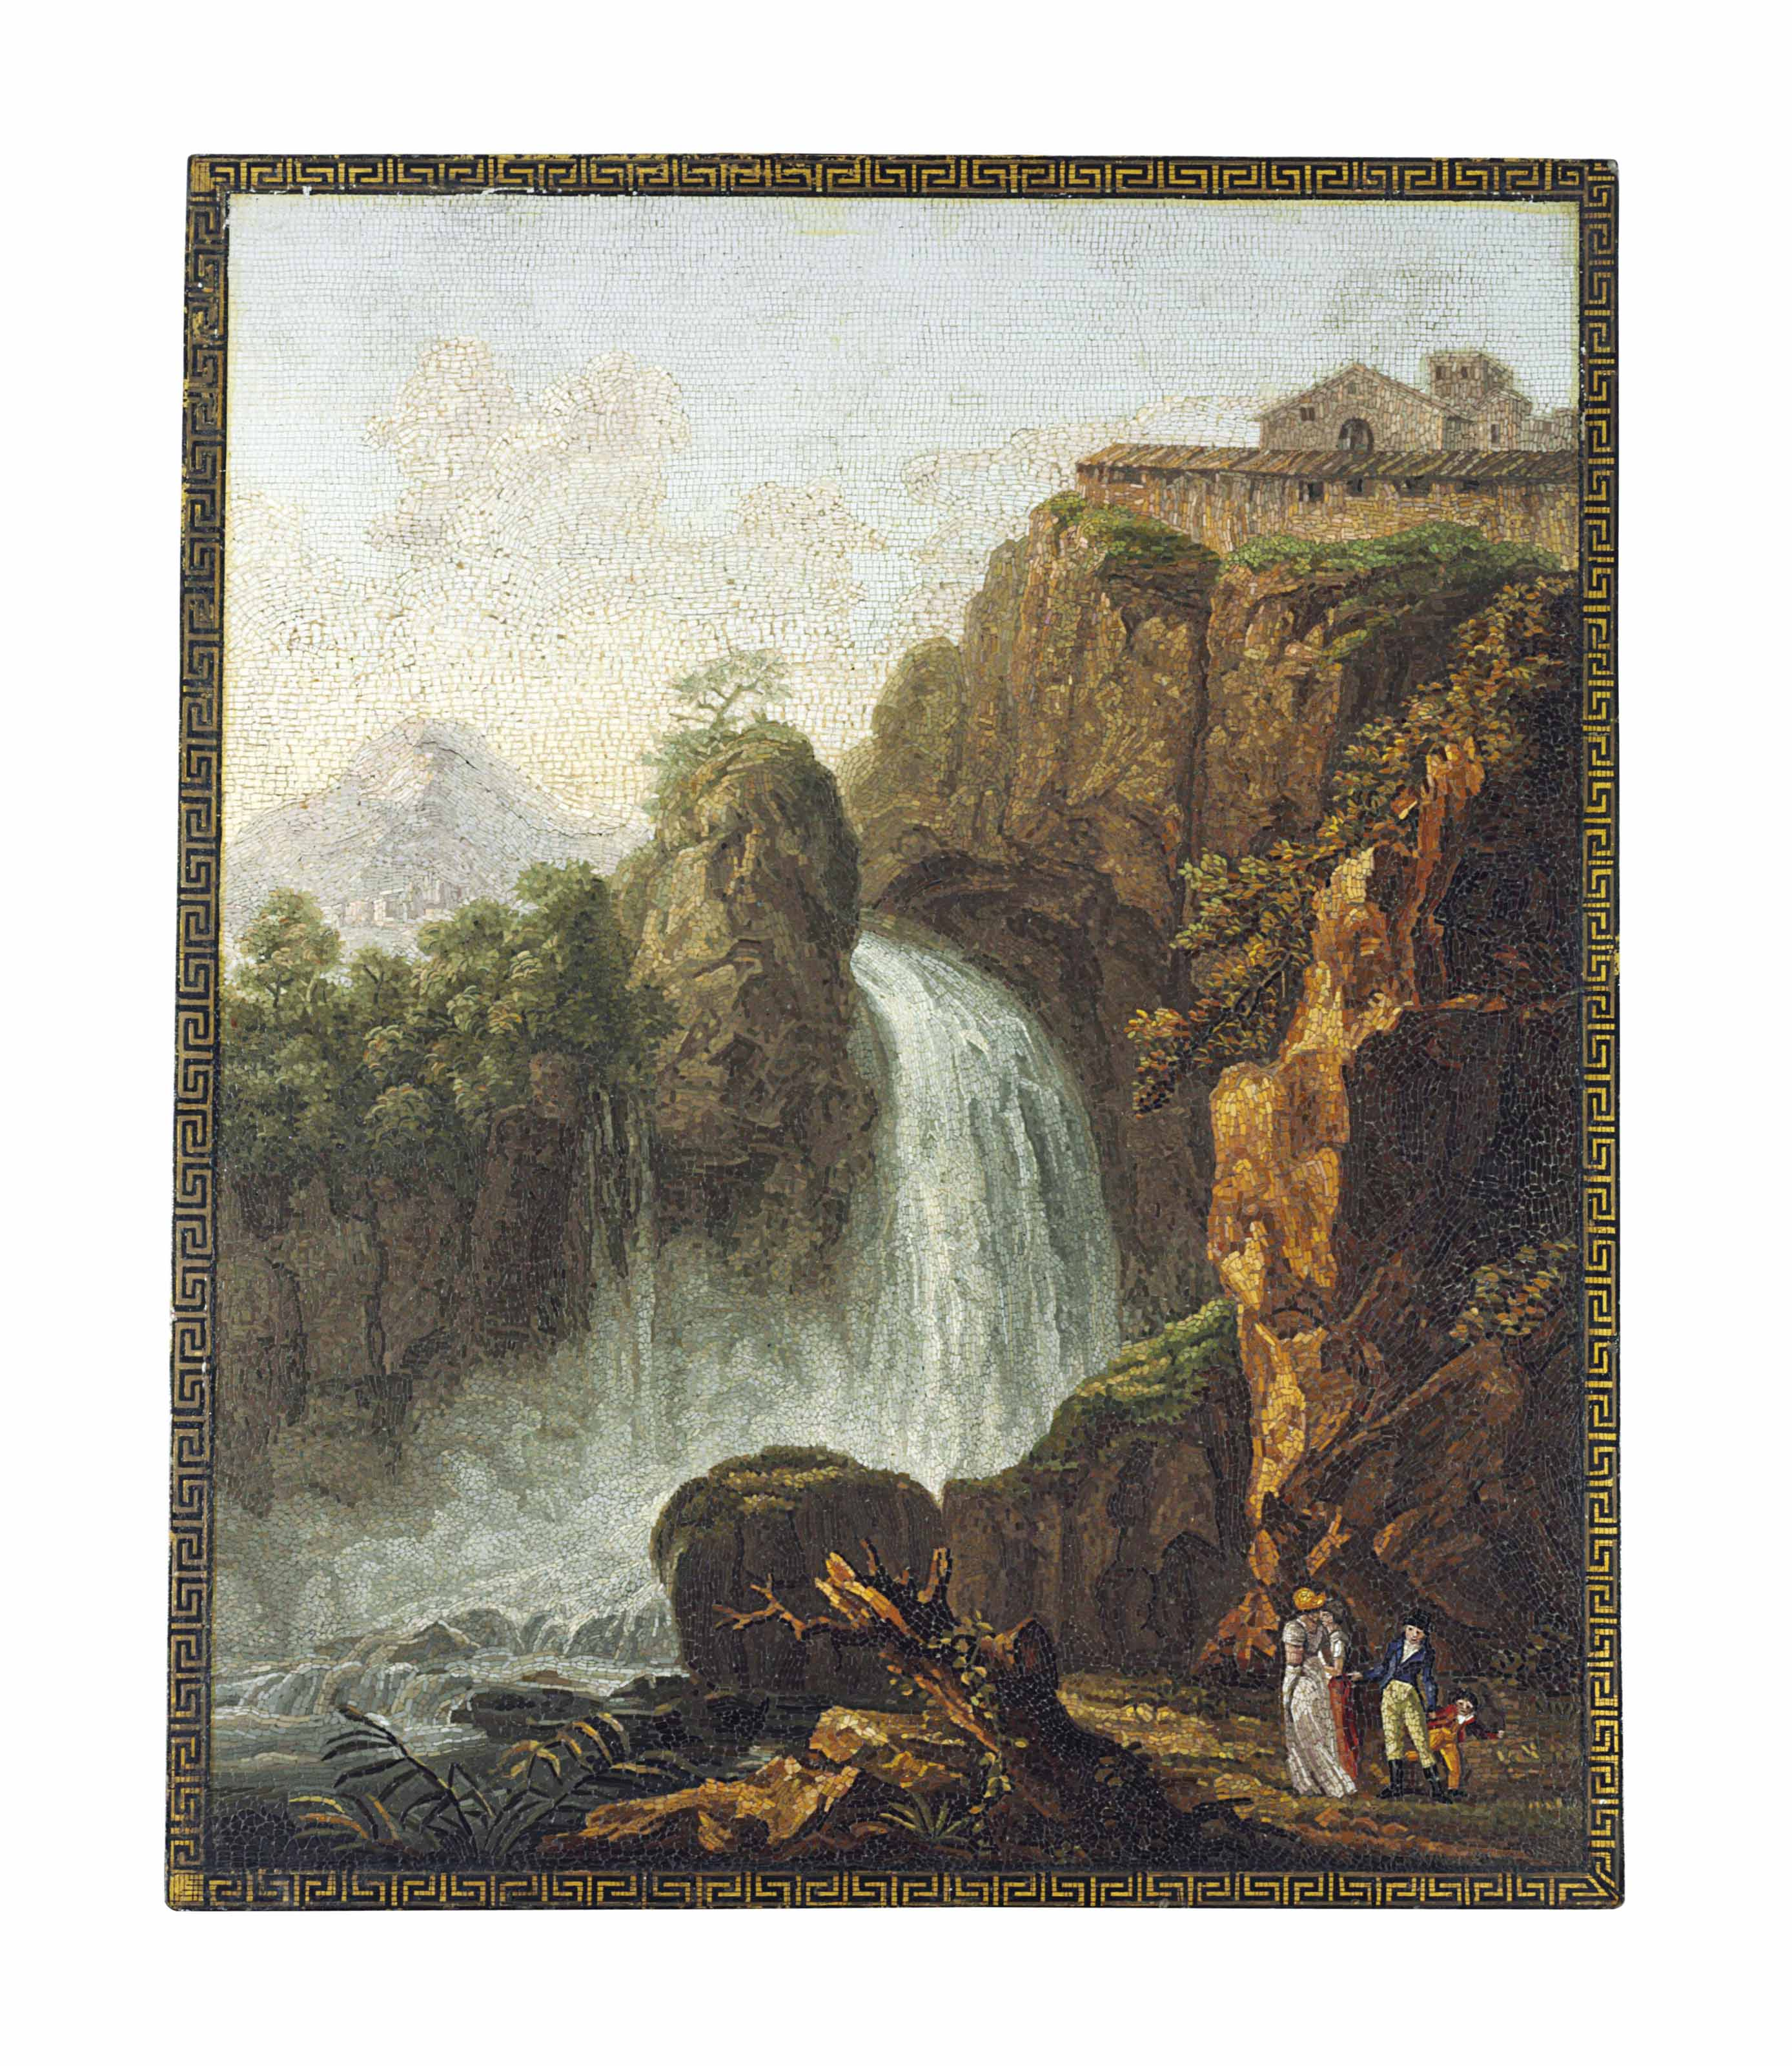 A MICROMOSAIC PANEL DEPICTING A WATERFALL